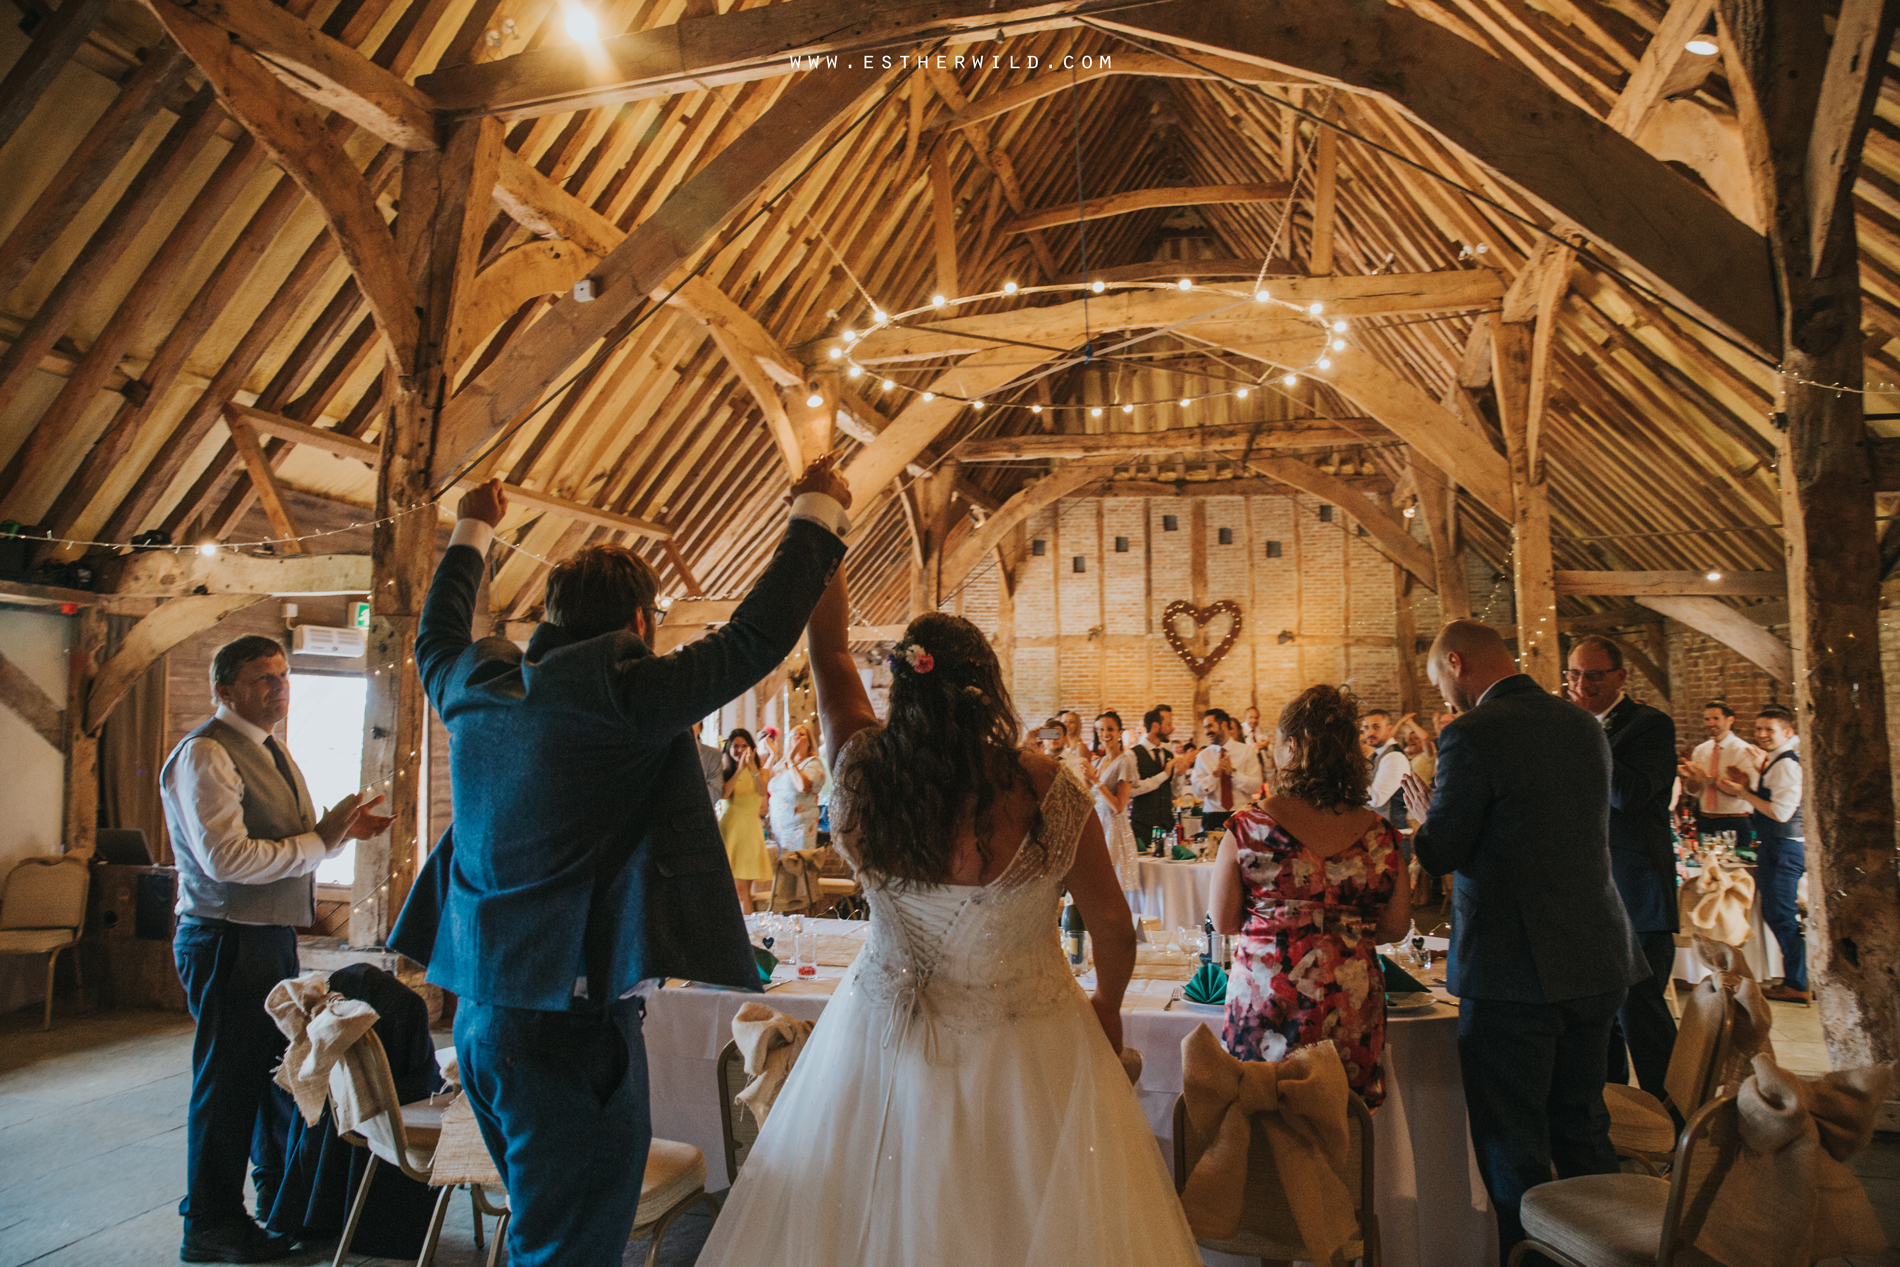 The_Red_Barn_Wedding_Kings_Lynn_Norfolk_IMG_1434.jpg